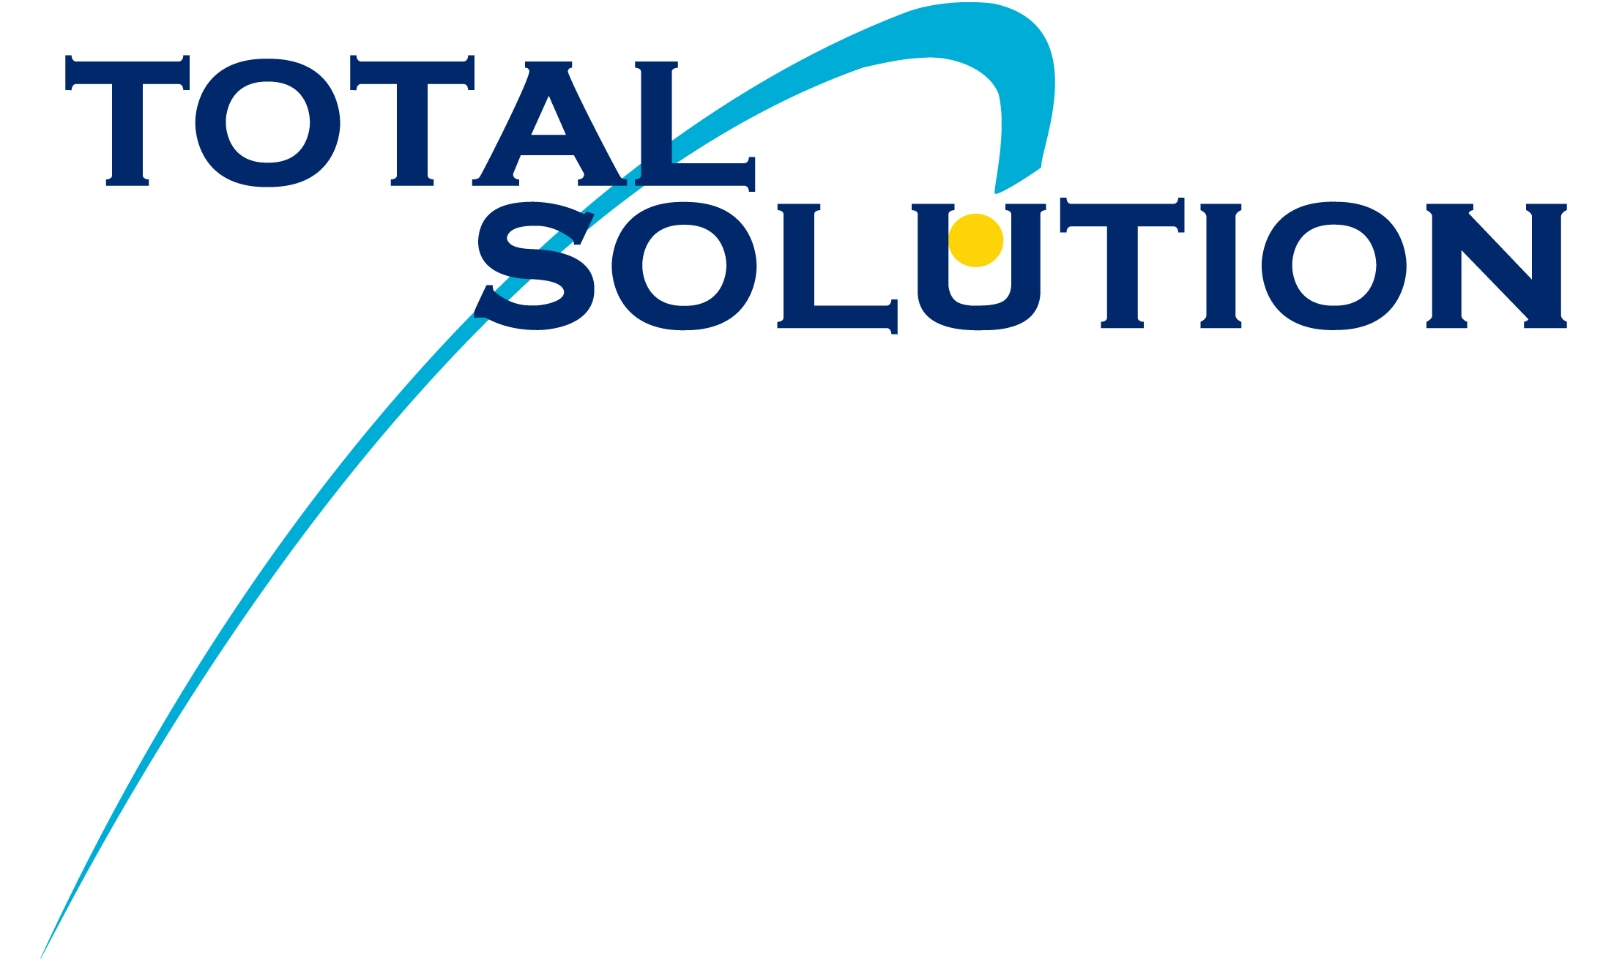 TOTAL SOLUTION MARKETING PTE. LTD.